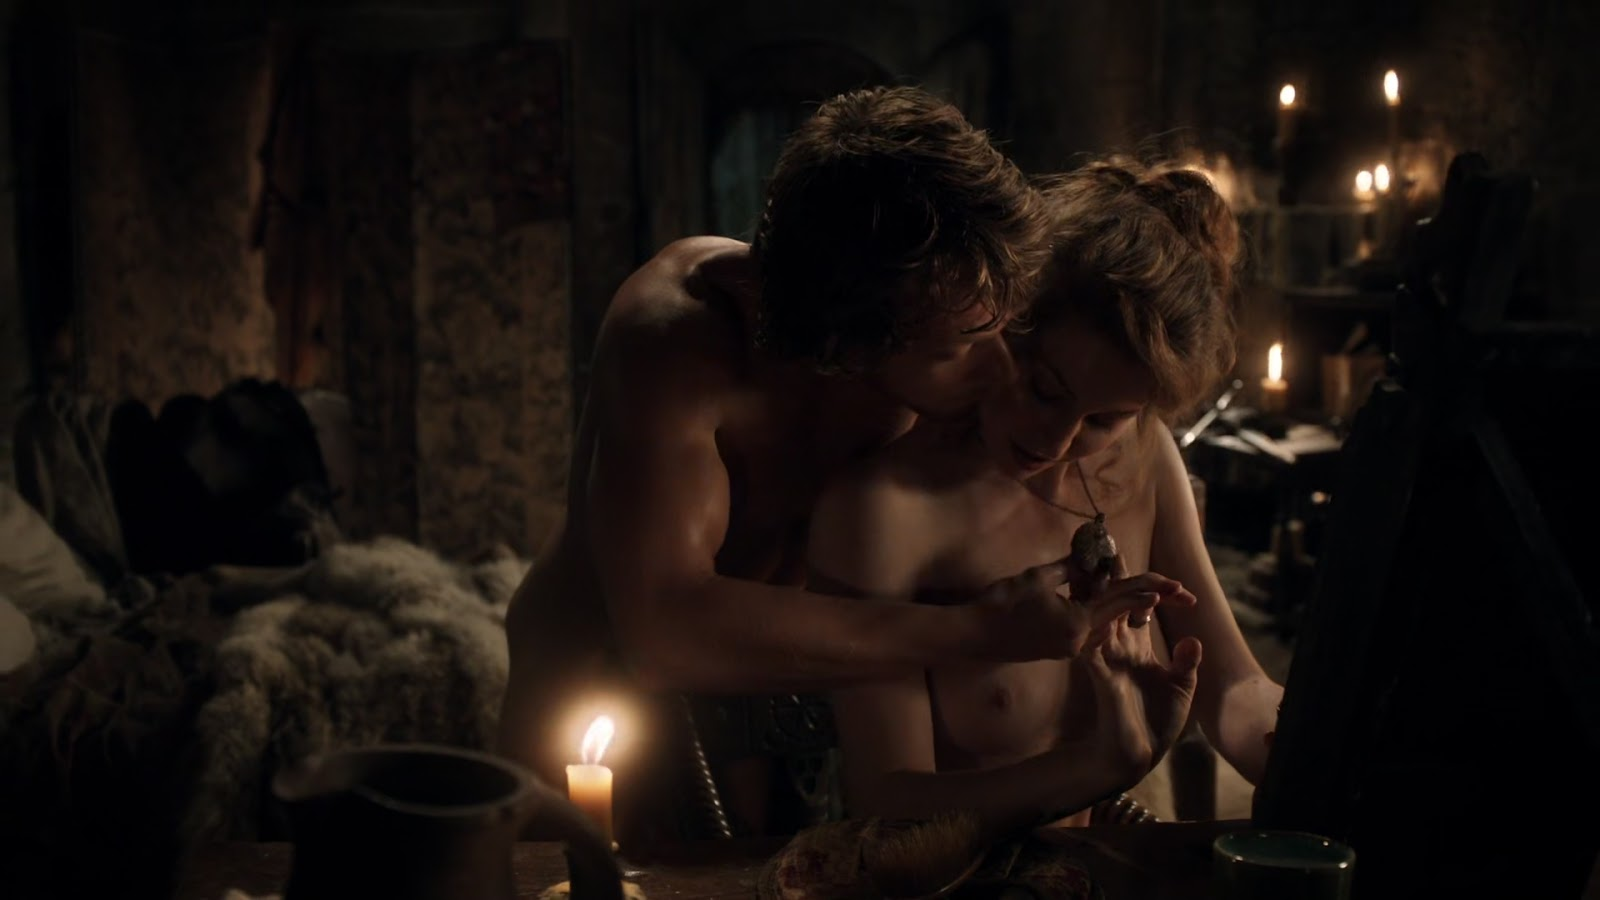 Watch game of thrones sex and nude scenes compilation